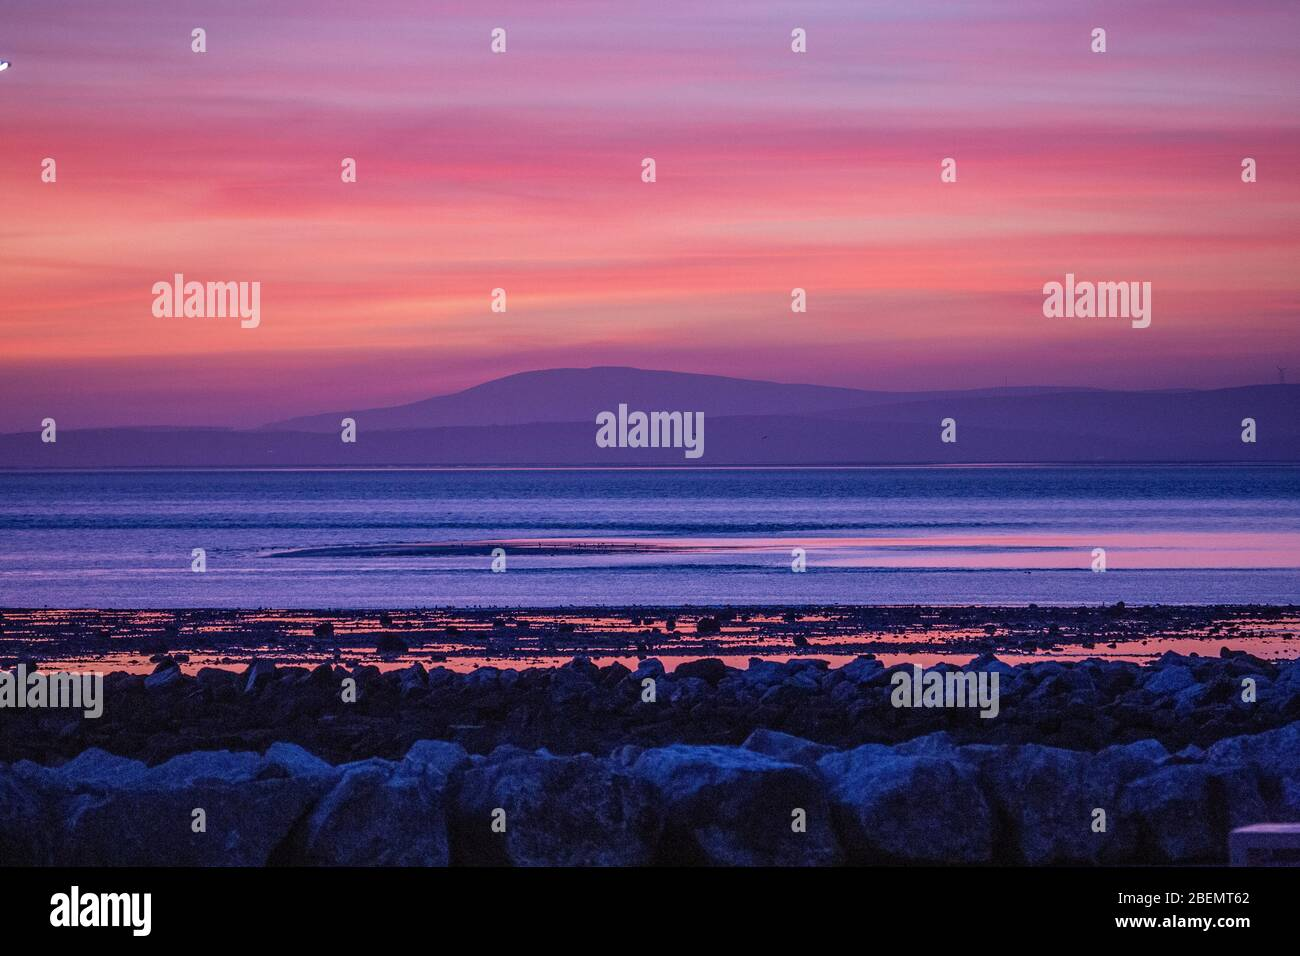 Heysham, Lancashire, United Kingdom. 14th Apr, 2020. Spectacular after glow behind the South Lakeland Fells, across Morecambe Bay brings to a close Tuesday. Credit: Photographing_North/Alamy Live News Stock Photo